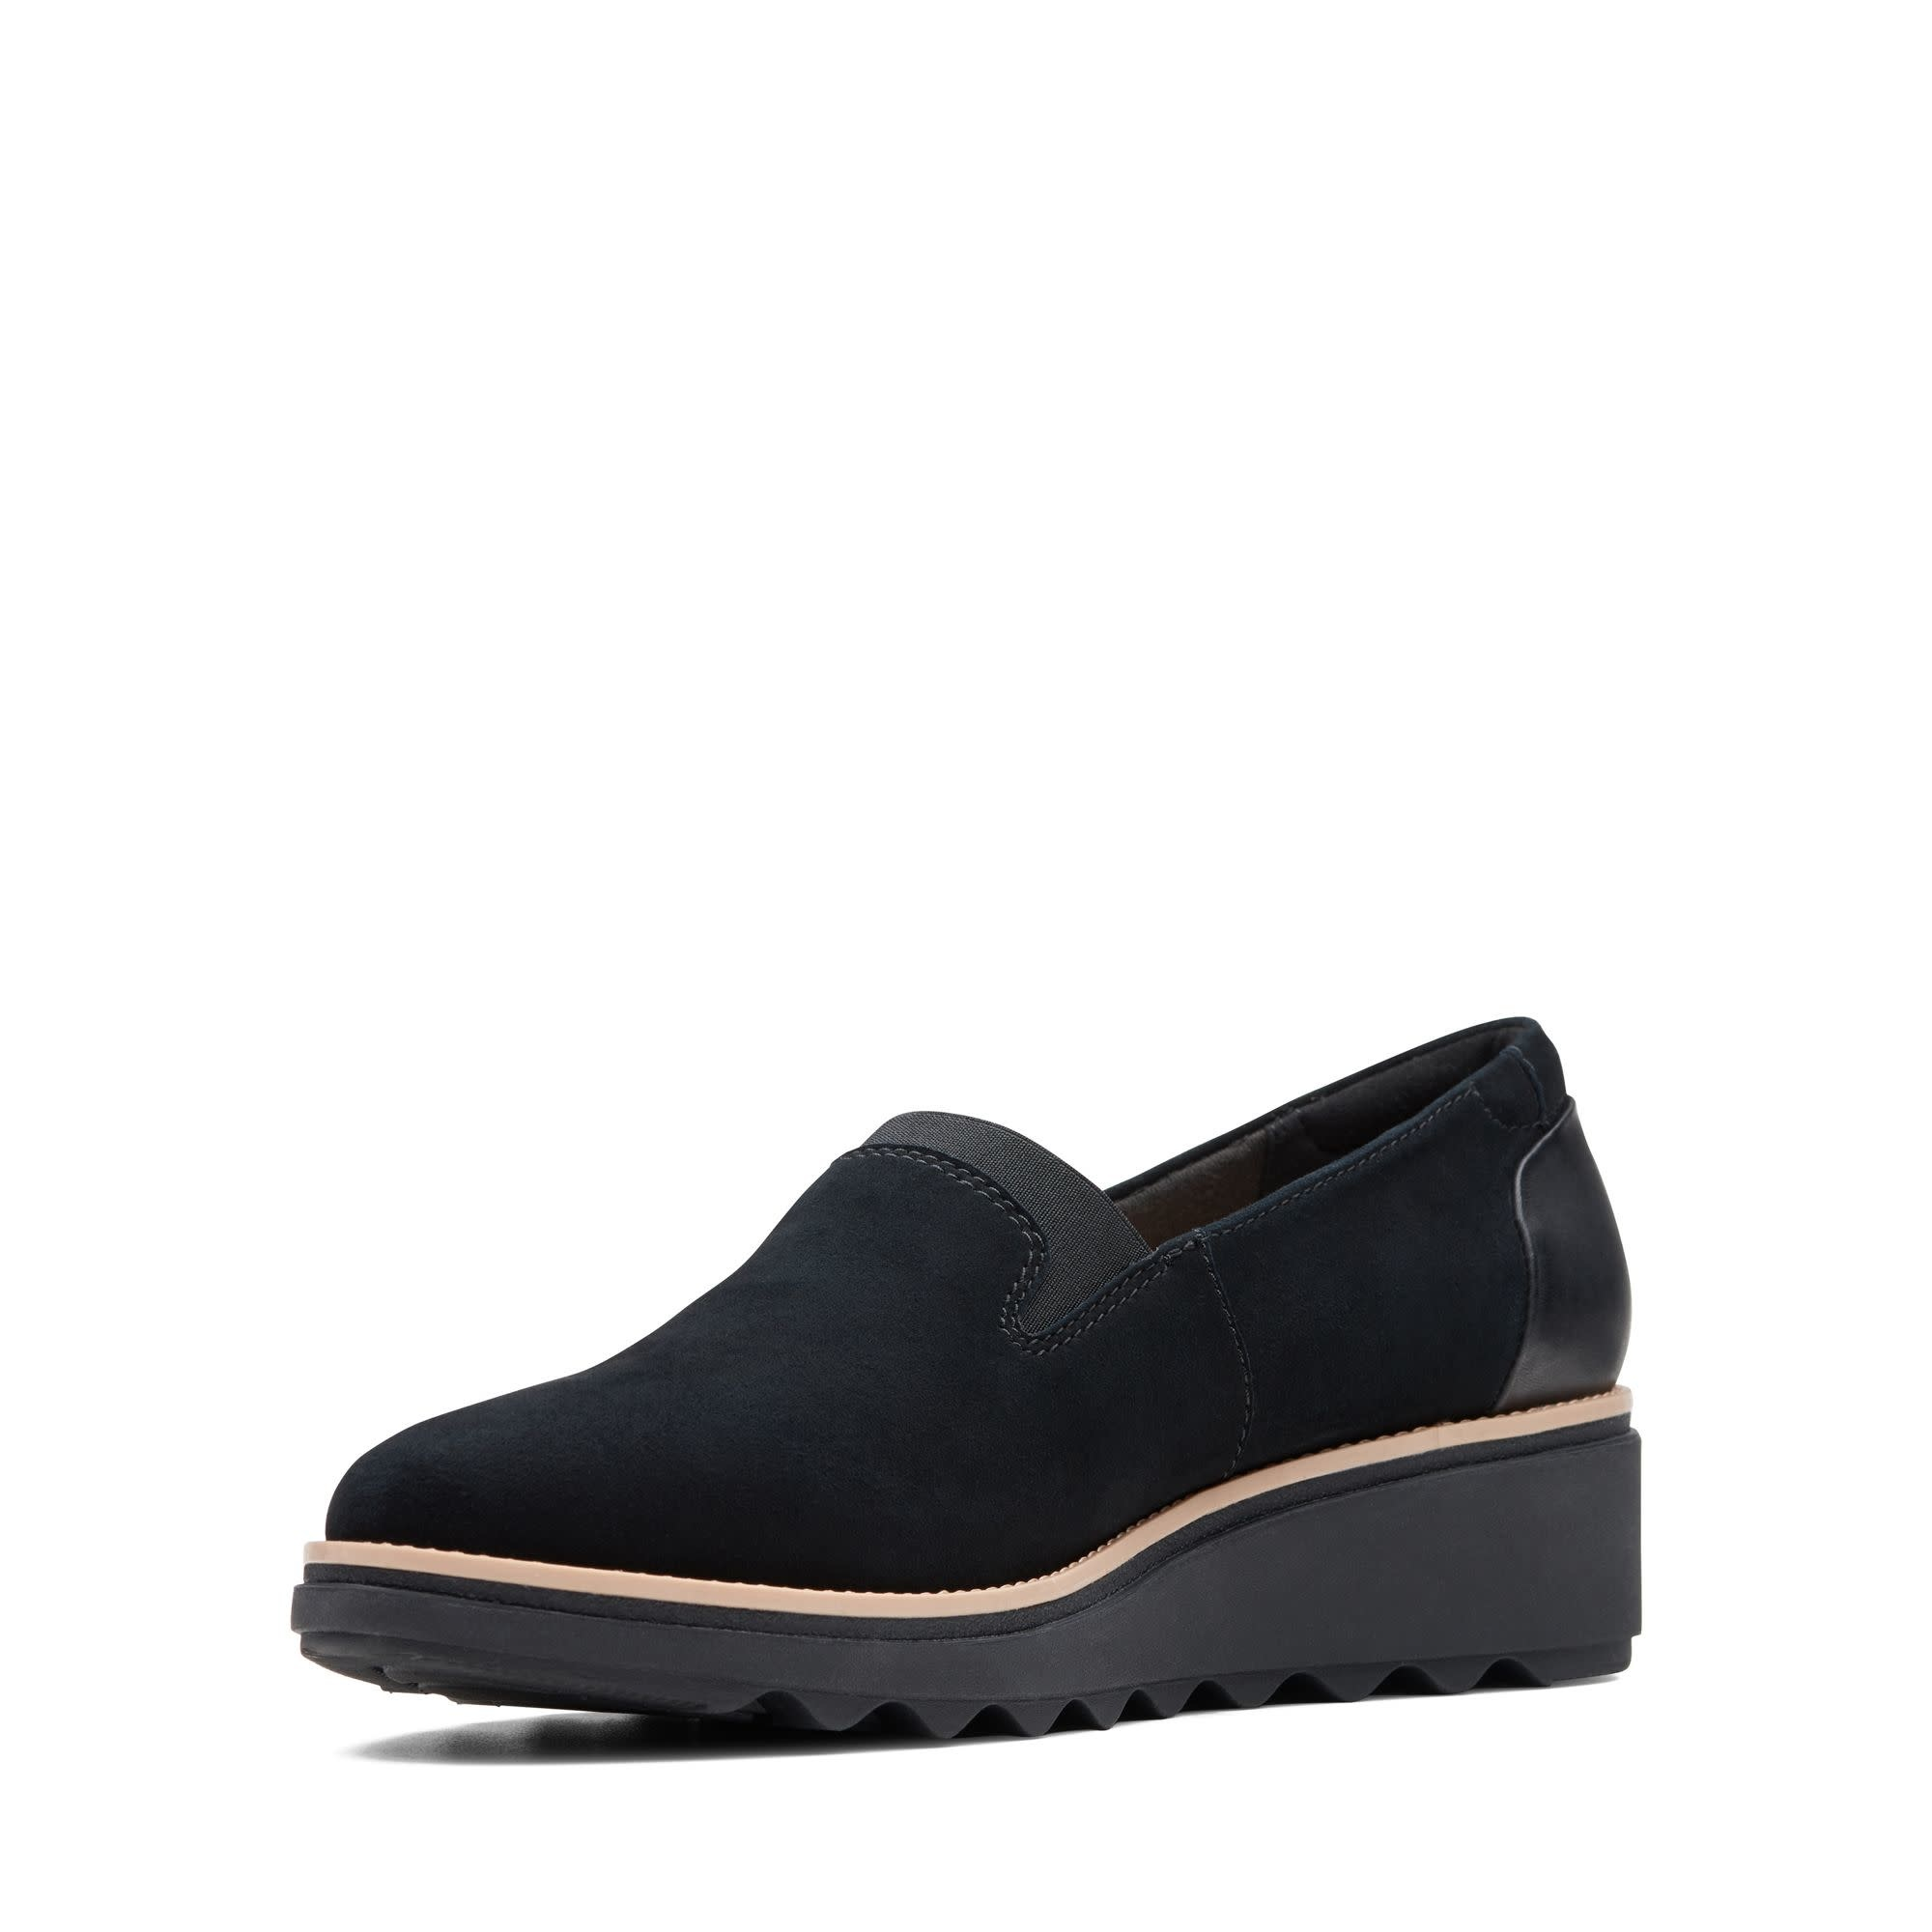 CLARKS SHARON DOLLY